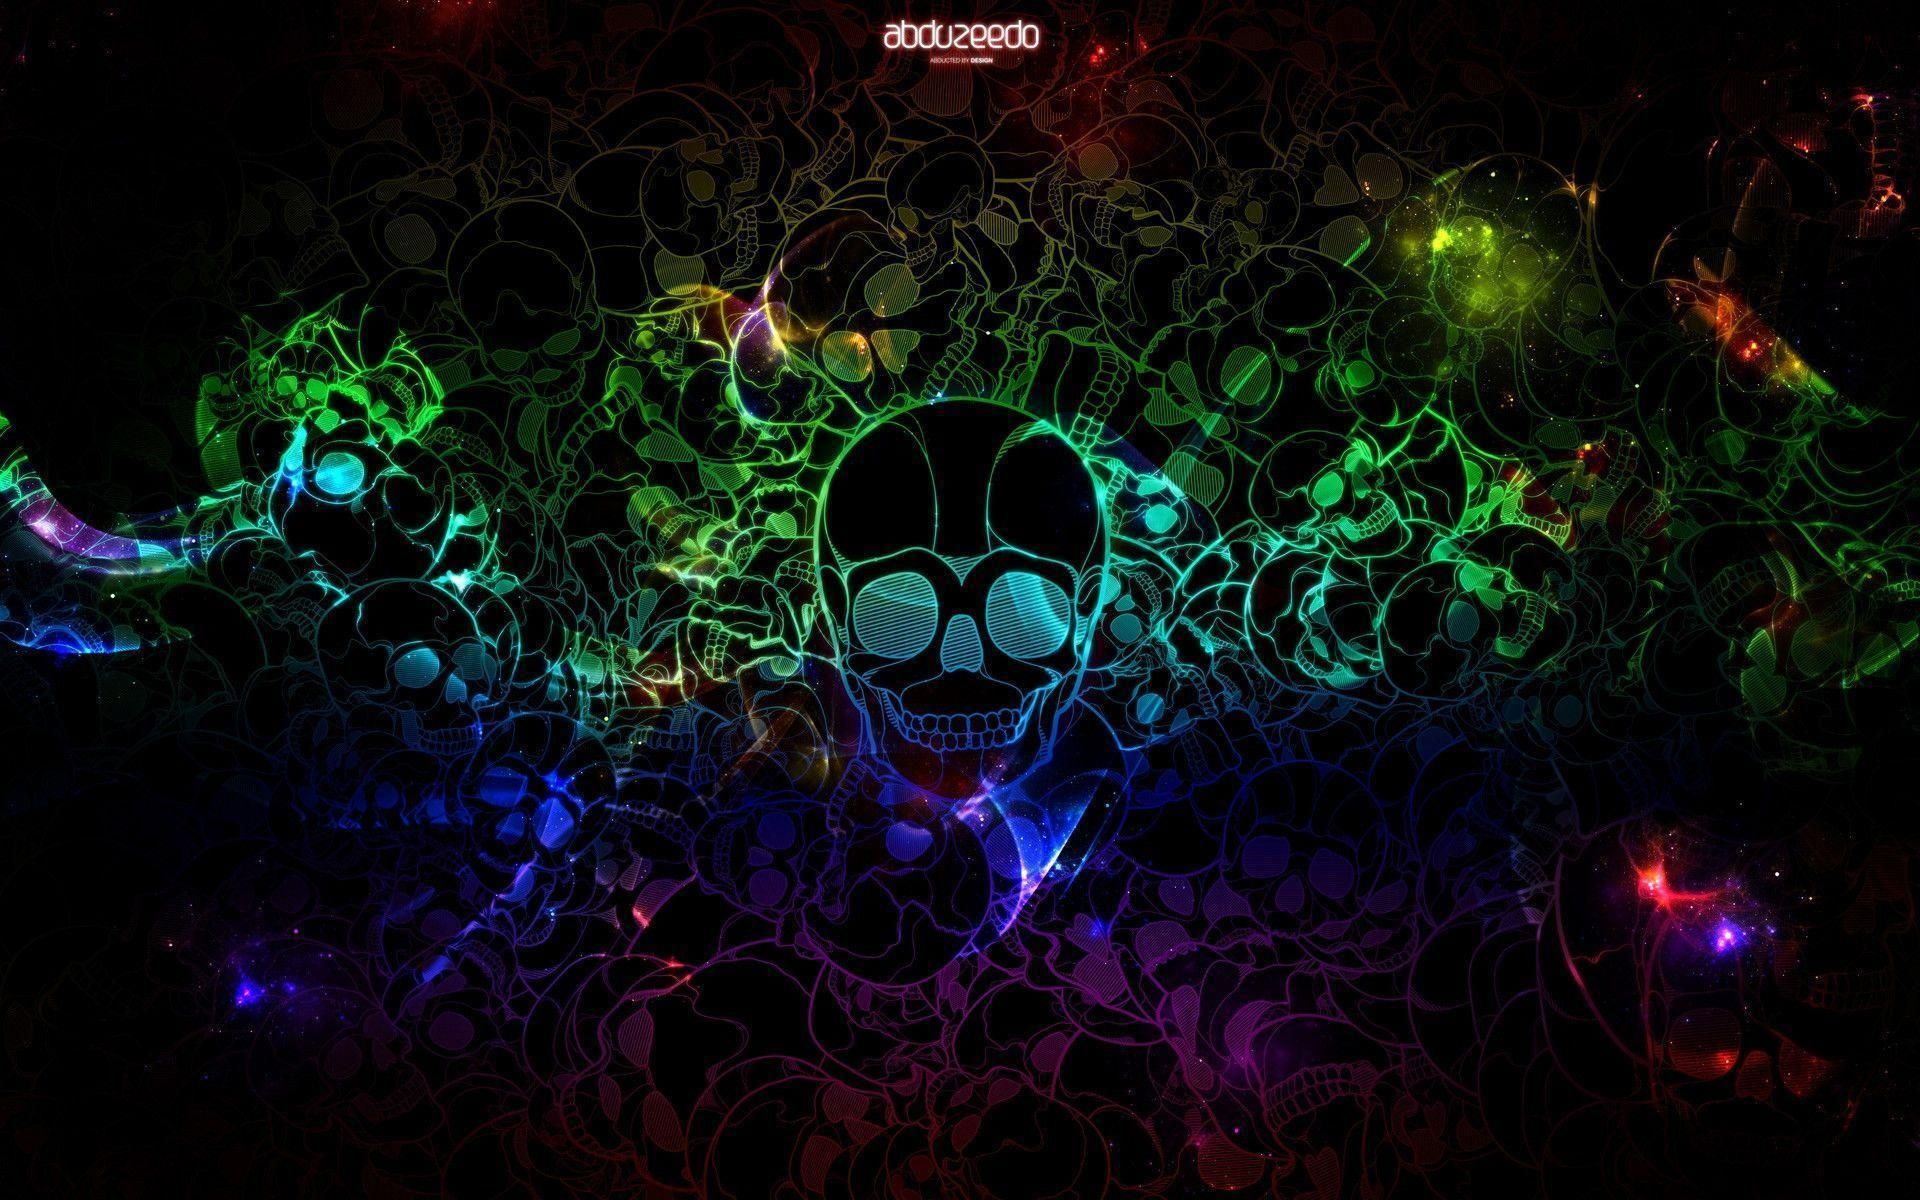 Cool Wallpapers For Laptop In 2020 Skull Wallpaper Cool Wallpapers For Laptop Neon Backgrounds